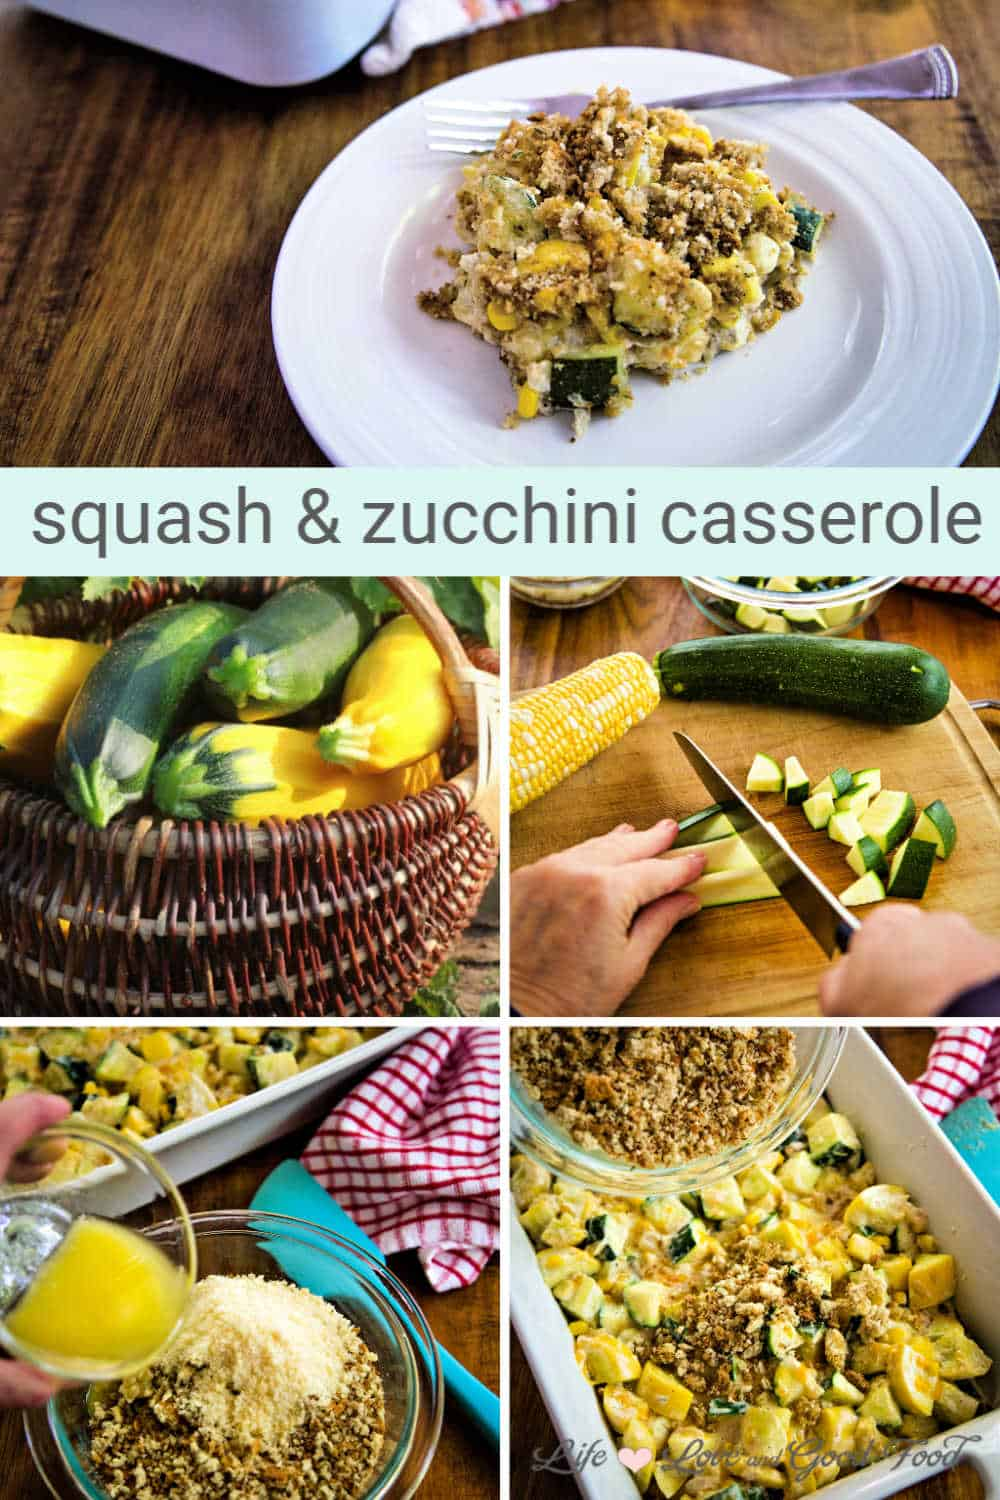 Squash and Zucchini Casserole is a delicious Southern side dish made with yellow squash, zucchini, and fresh corn with a crunchy breadcrumb and Parmesan cheese topping. Served hot and bubbly, this cheesy casserole is the perfect way to use up an abundance of Summer squash.